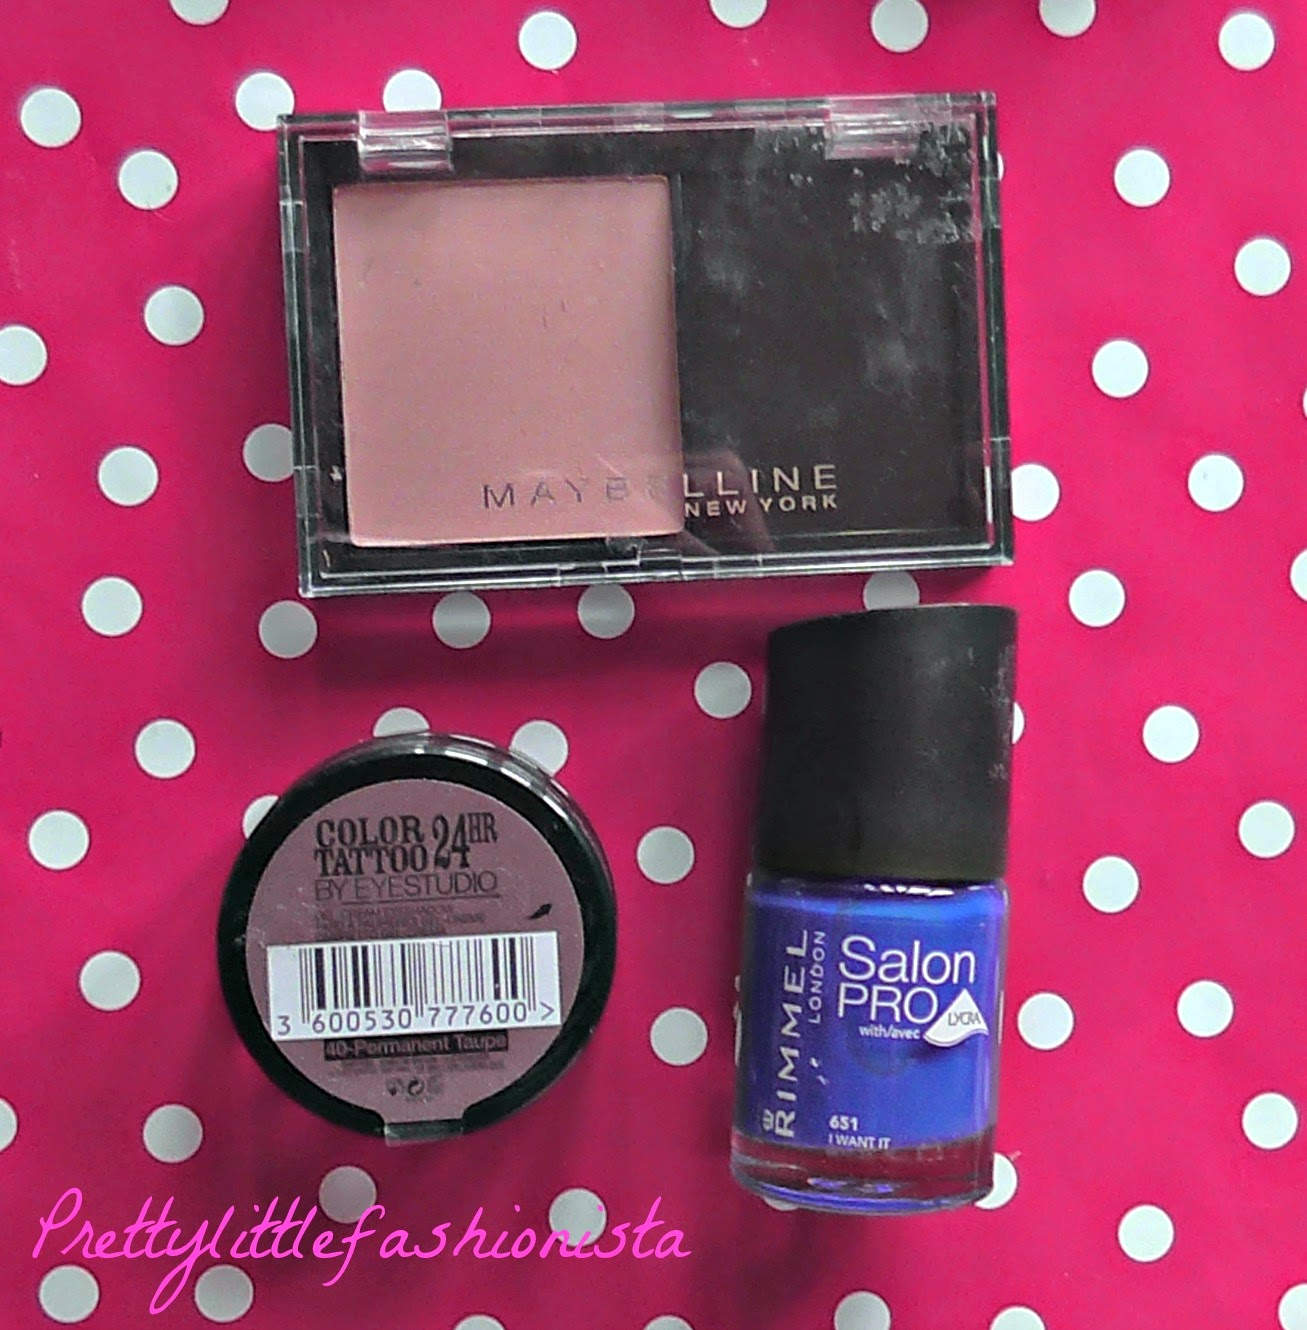 April Makeup Haul